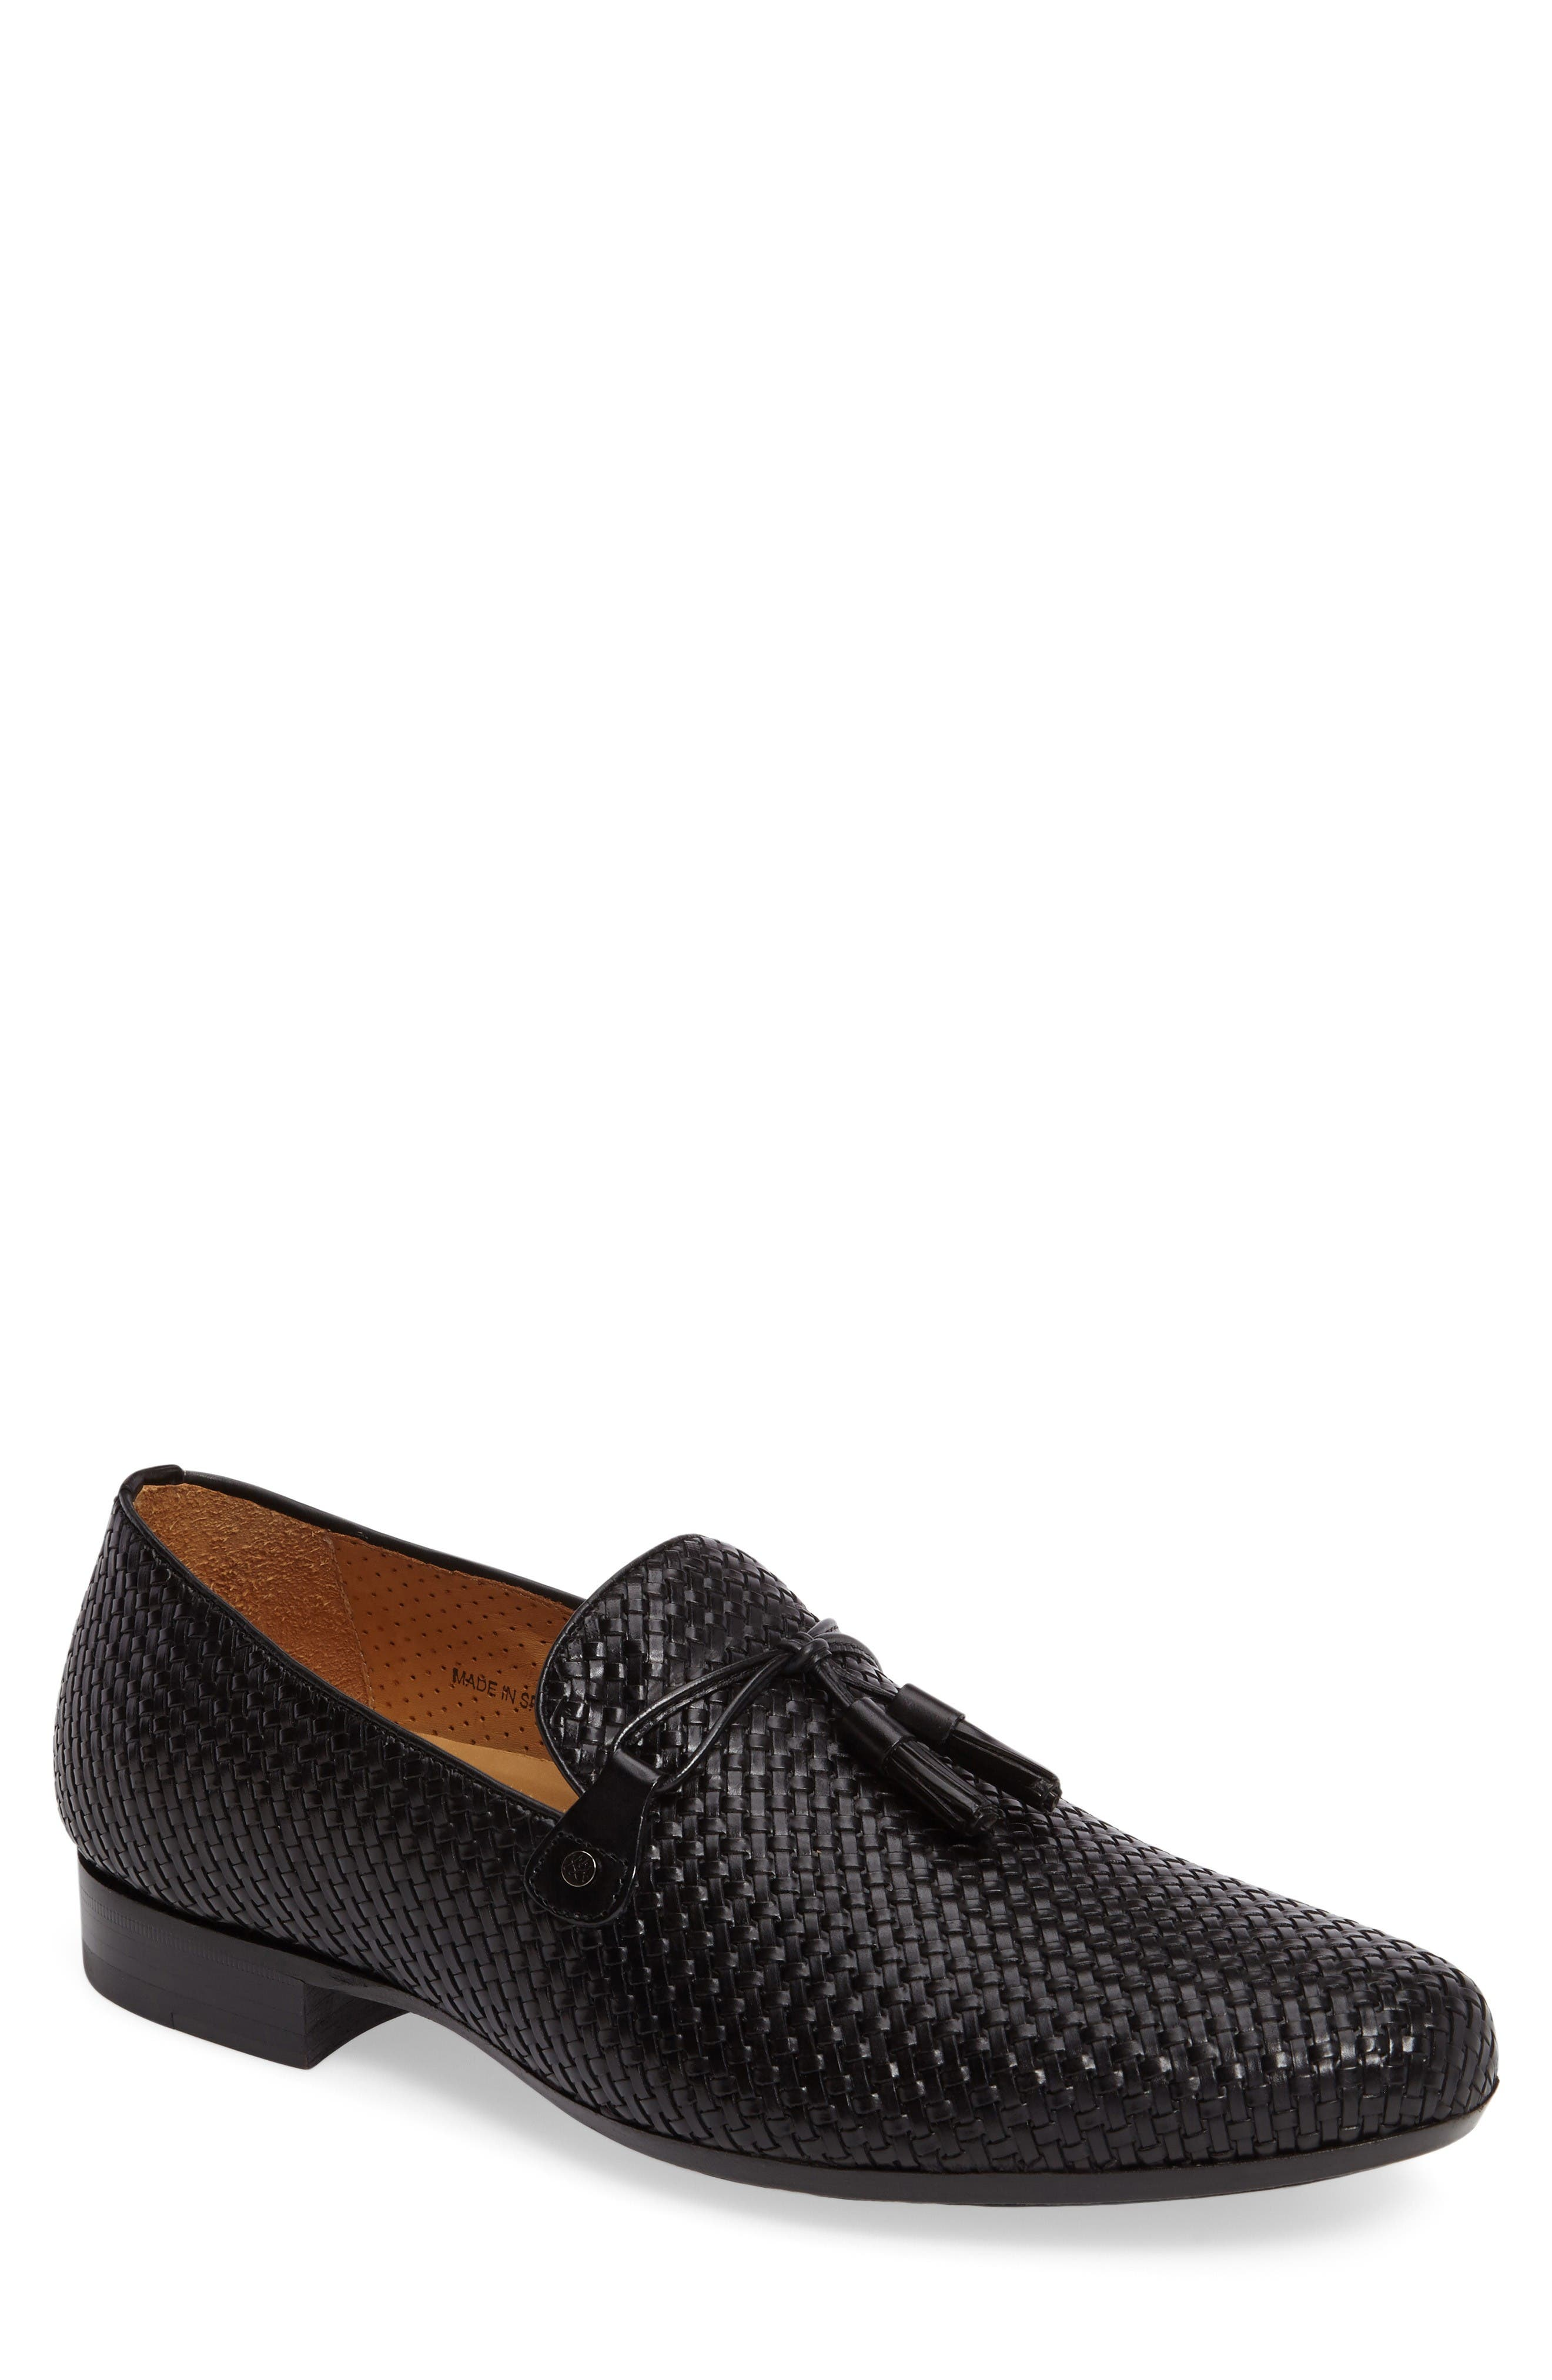 Turning Woven Tassel Loafer,                         Main,                         color, Black Leather